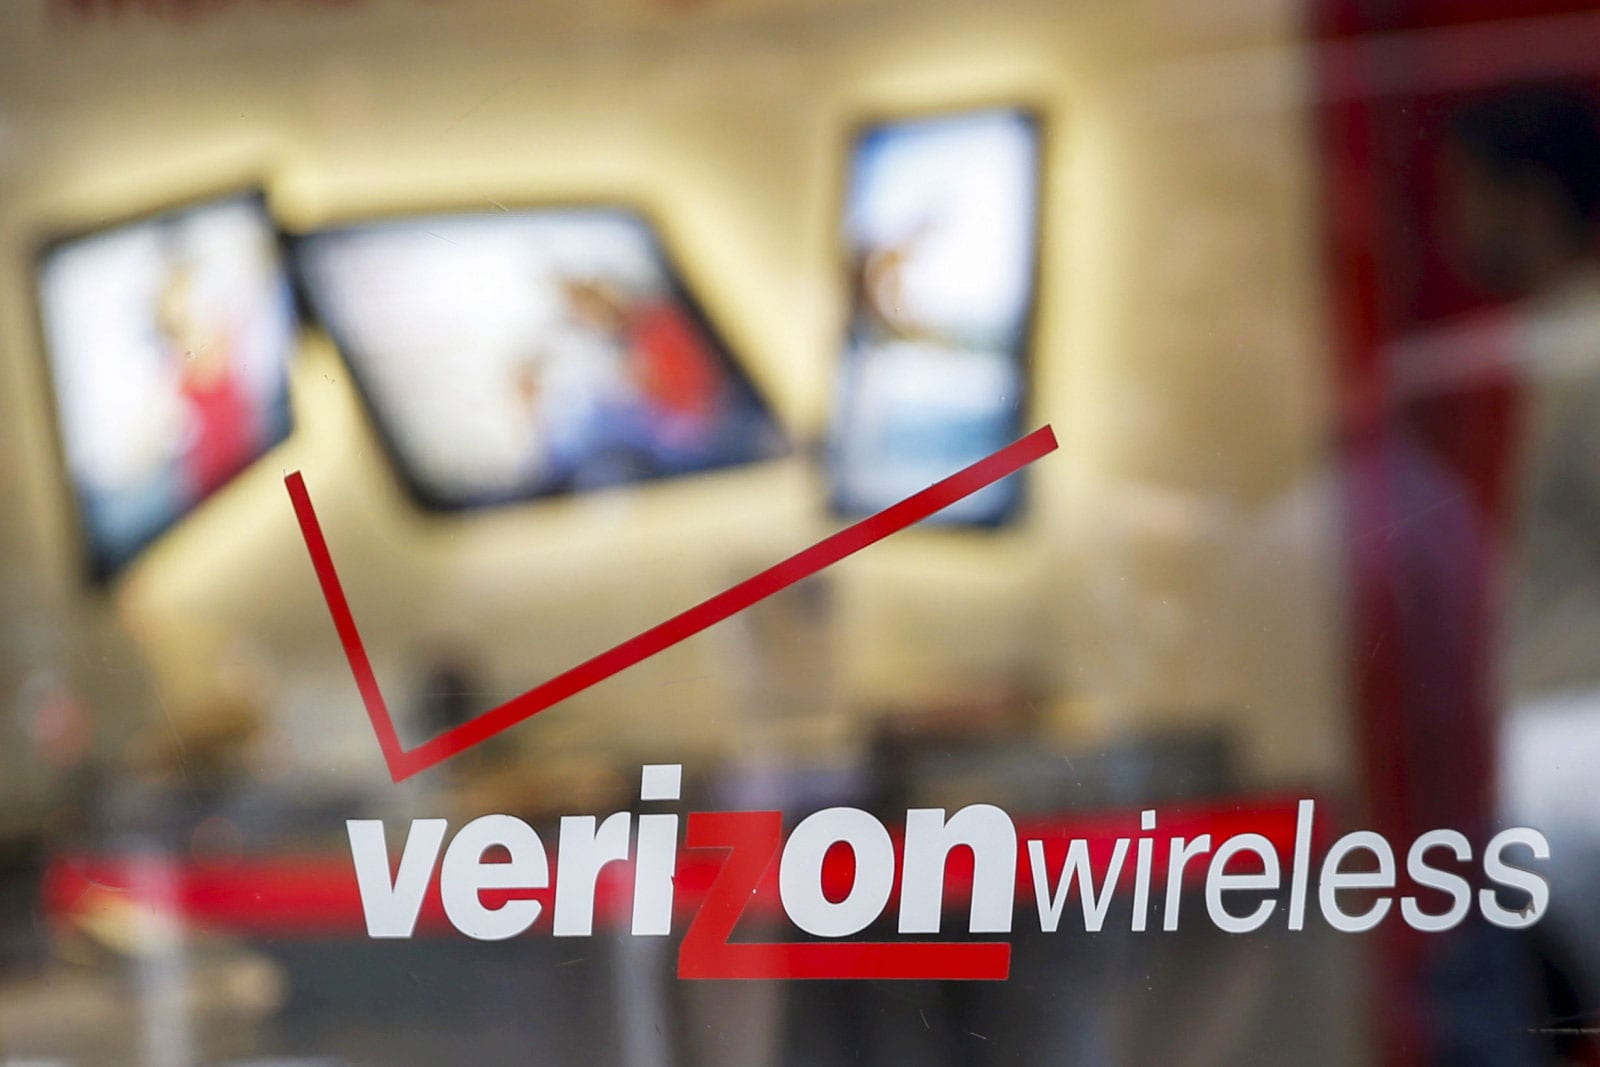 verizon finally adds free unlimited slow data to all its plans